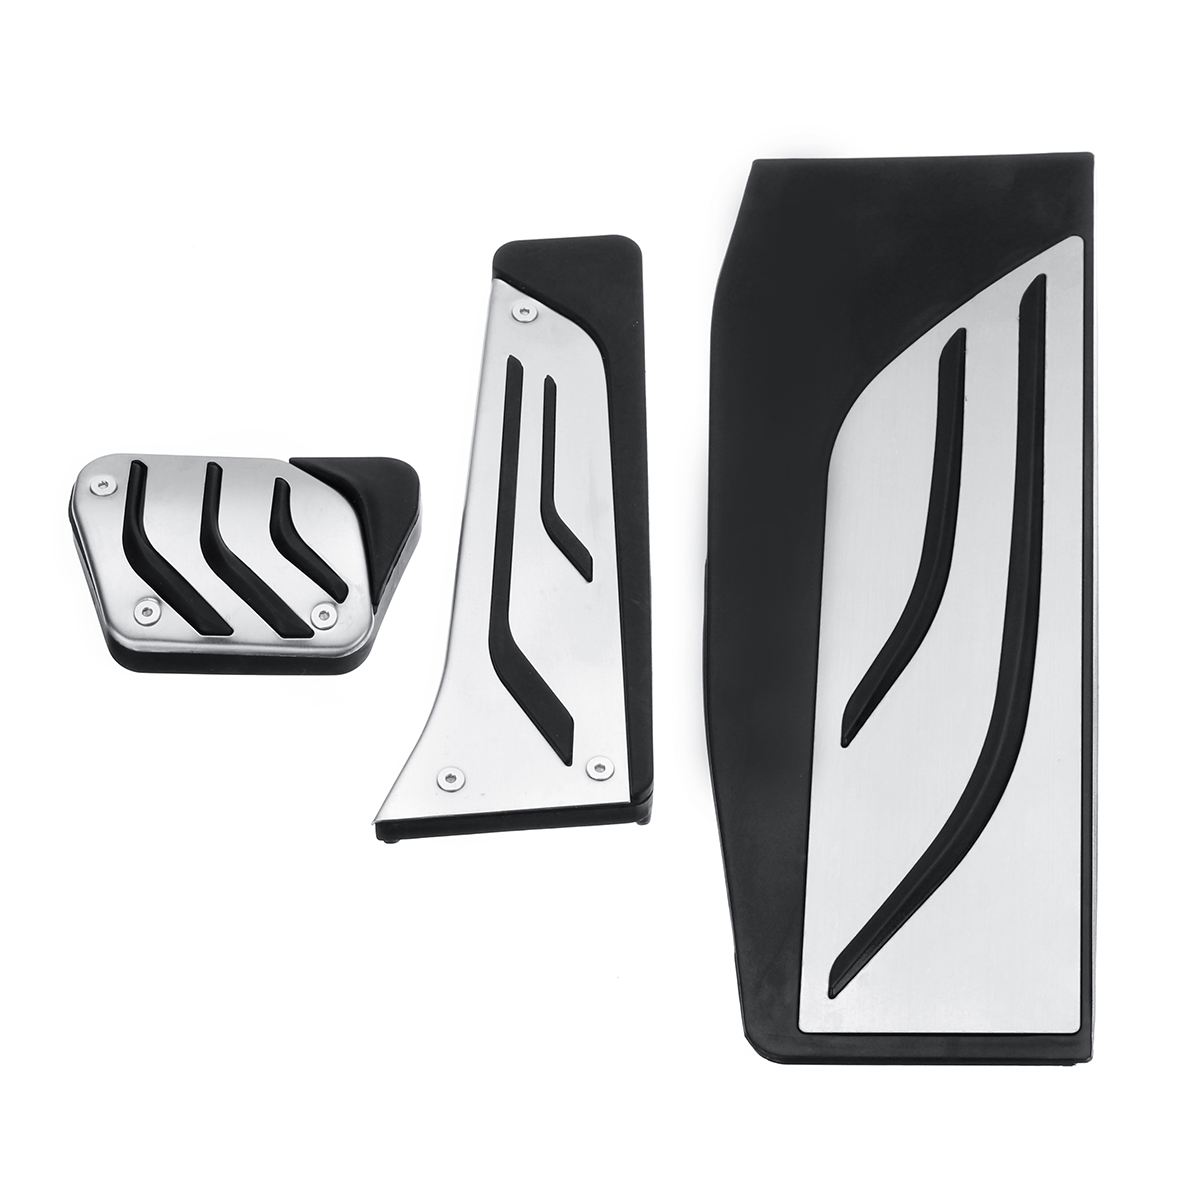 3Pcs Stainless Steel Car Interior Brake Accelerator Pedal Cover Trim Pad for BMW Series